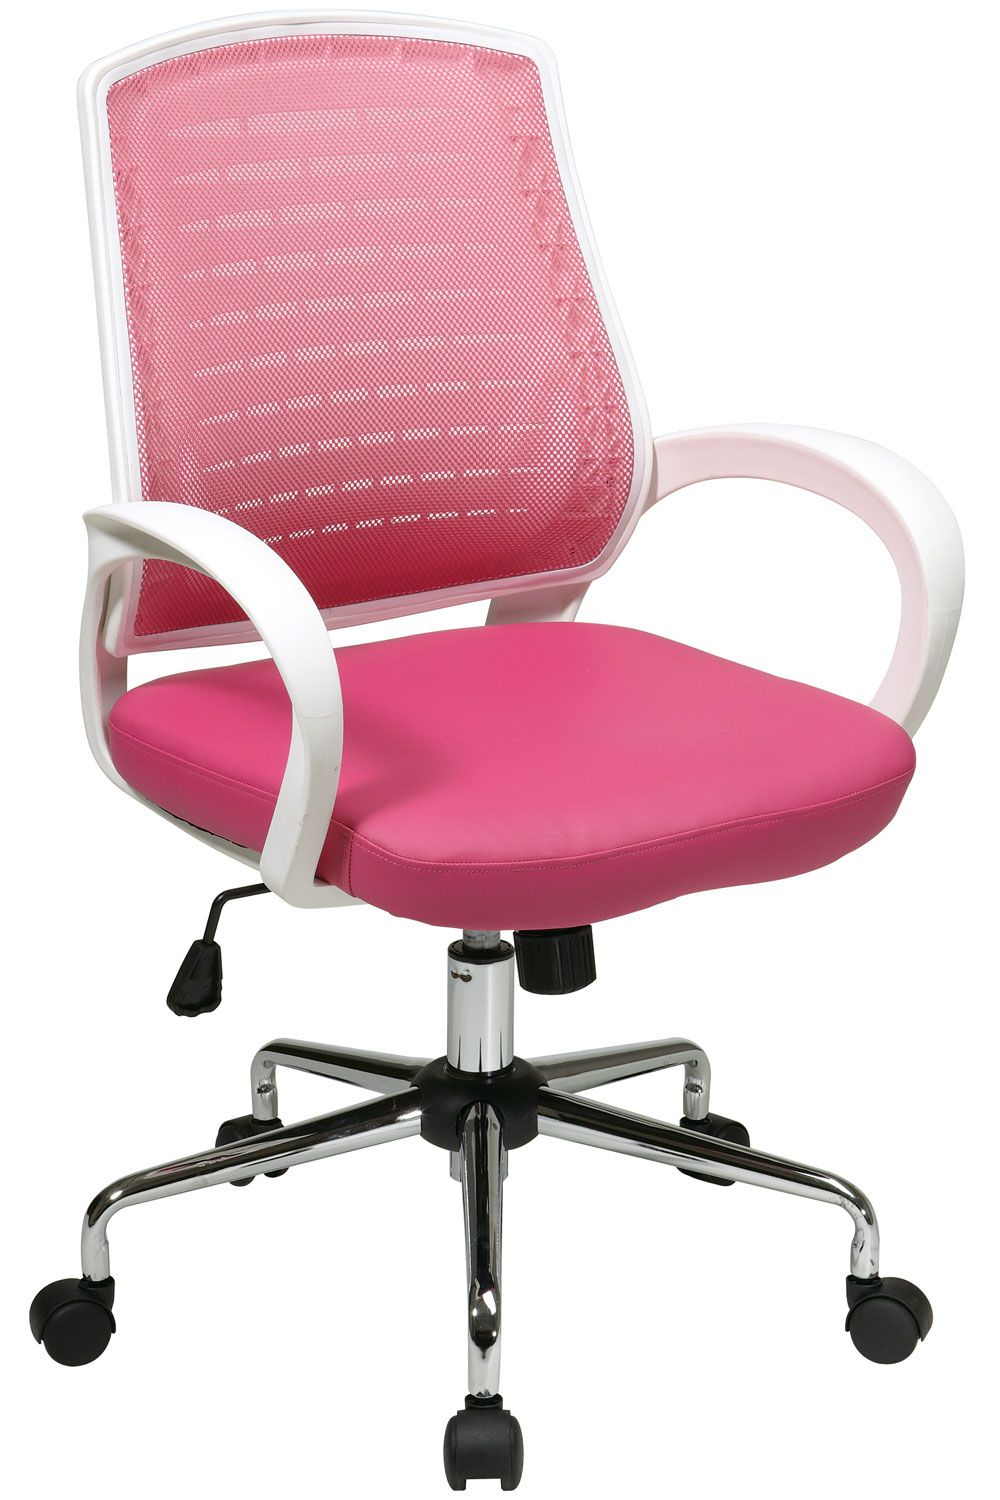 awesome home office furniture john schultz. awesome lovely office chair pink 68 with additional home decor ideas check furniture john schultz r